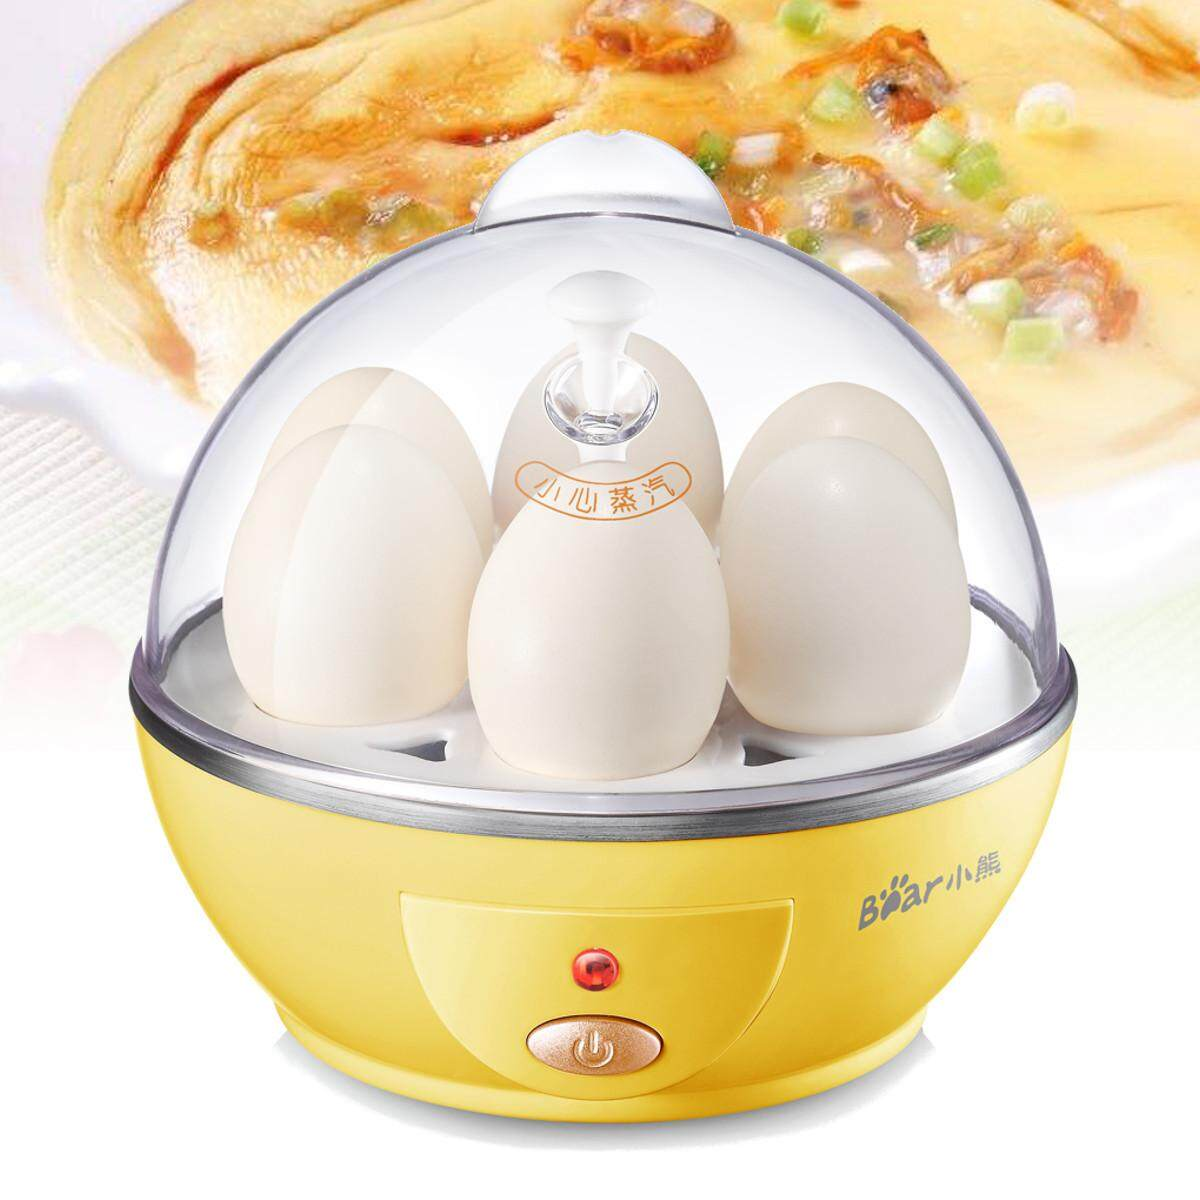 6 Egg Boiler Multifunction Mini Electric Cooker Steamer Poacher Auto Power-Off By Glimmer.